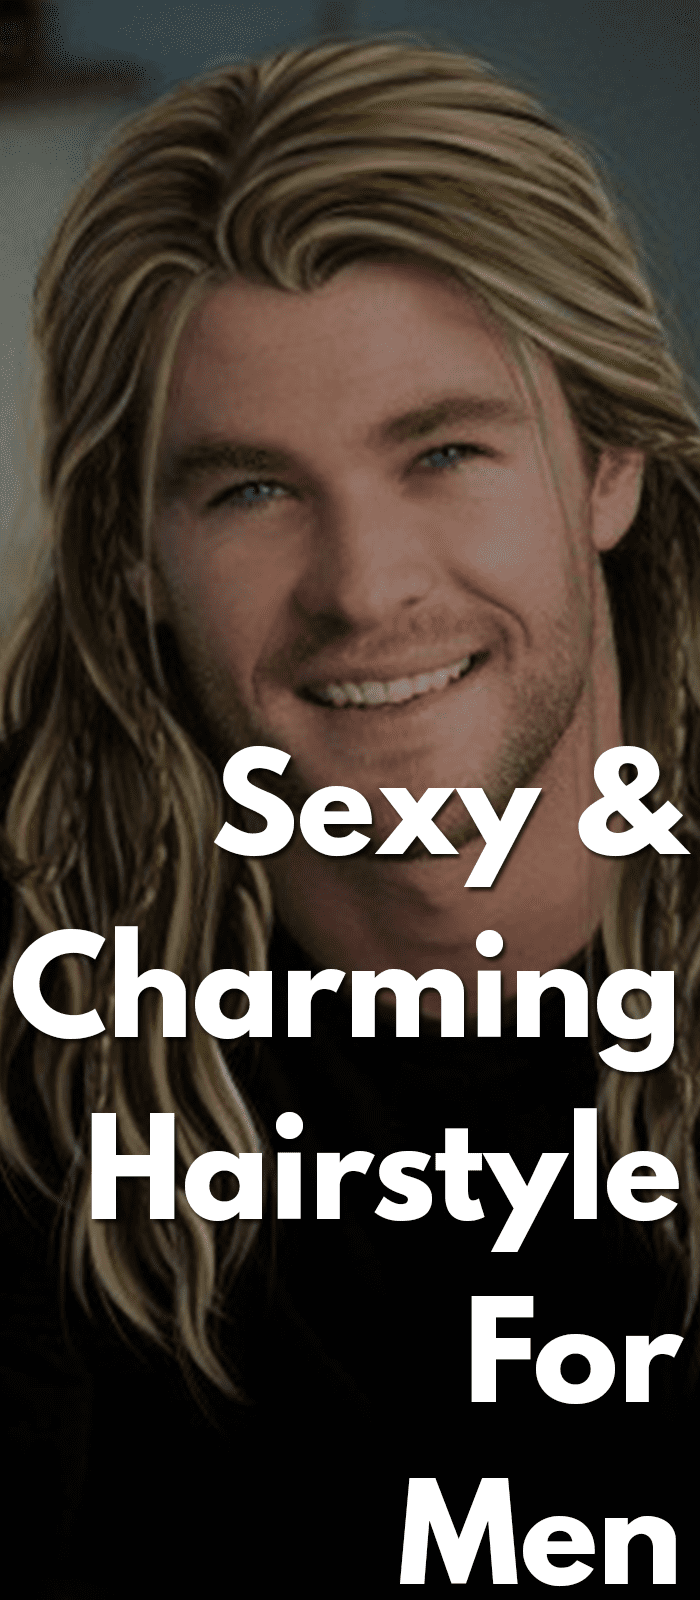 Sexy-&-Charming-Hairstyle-For-Men.